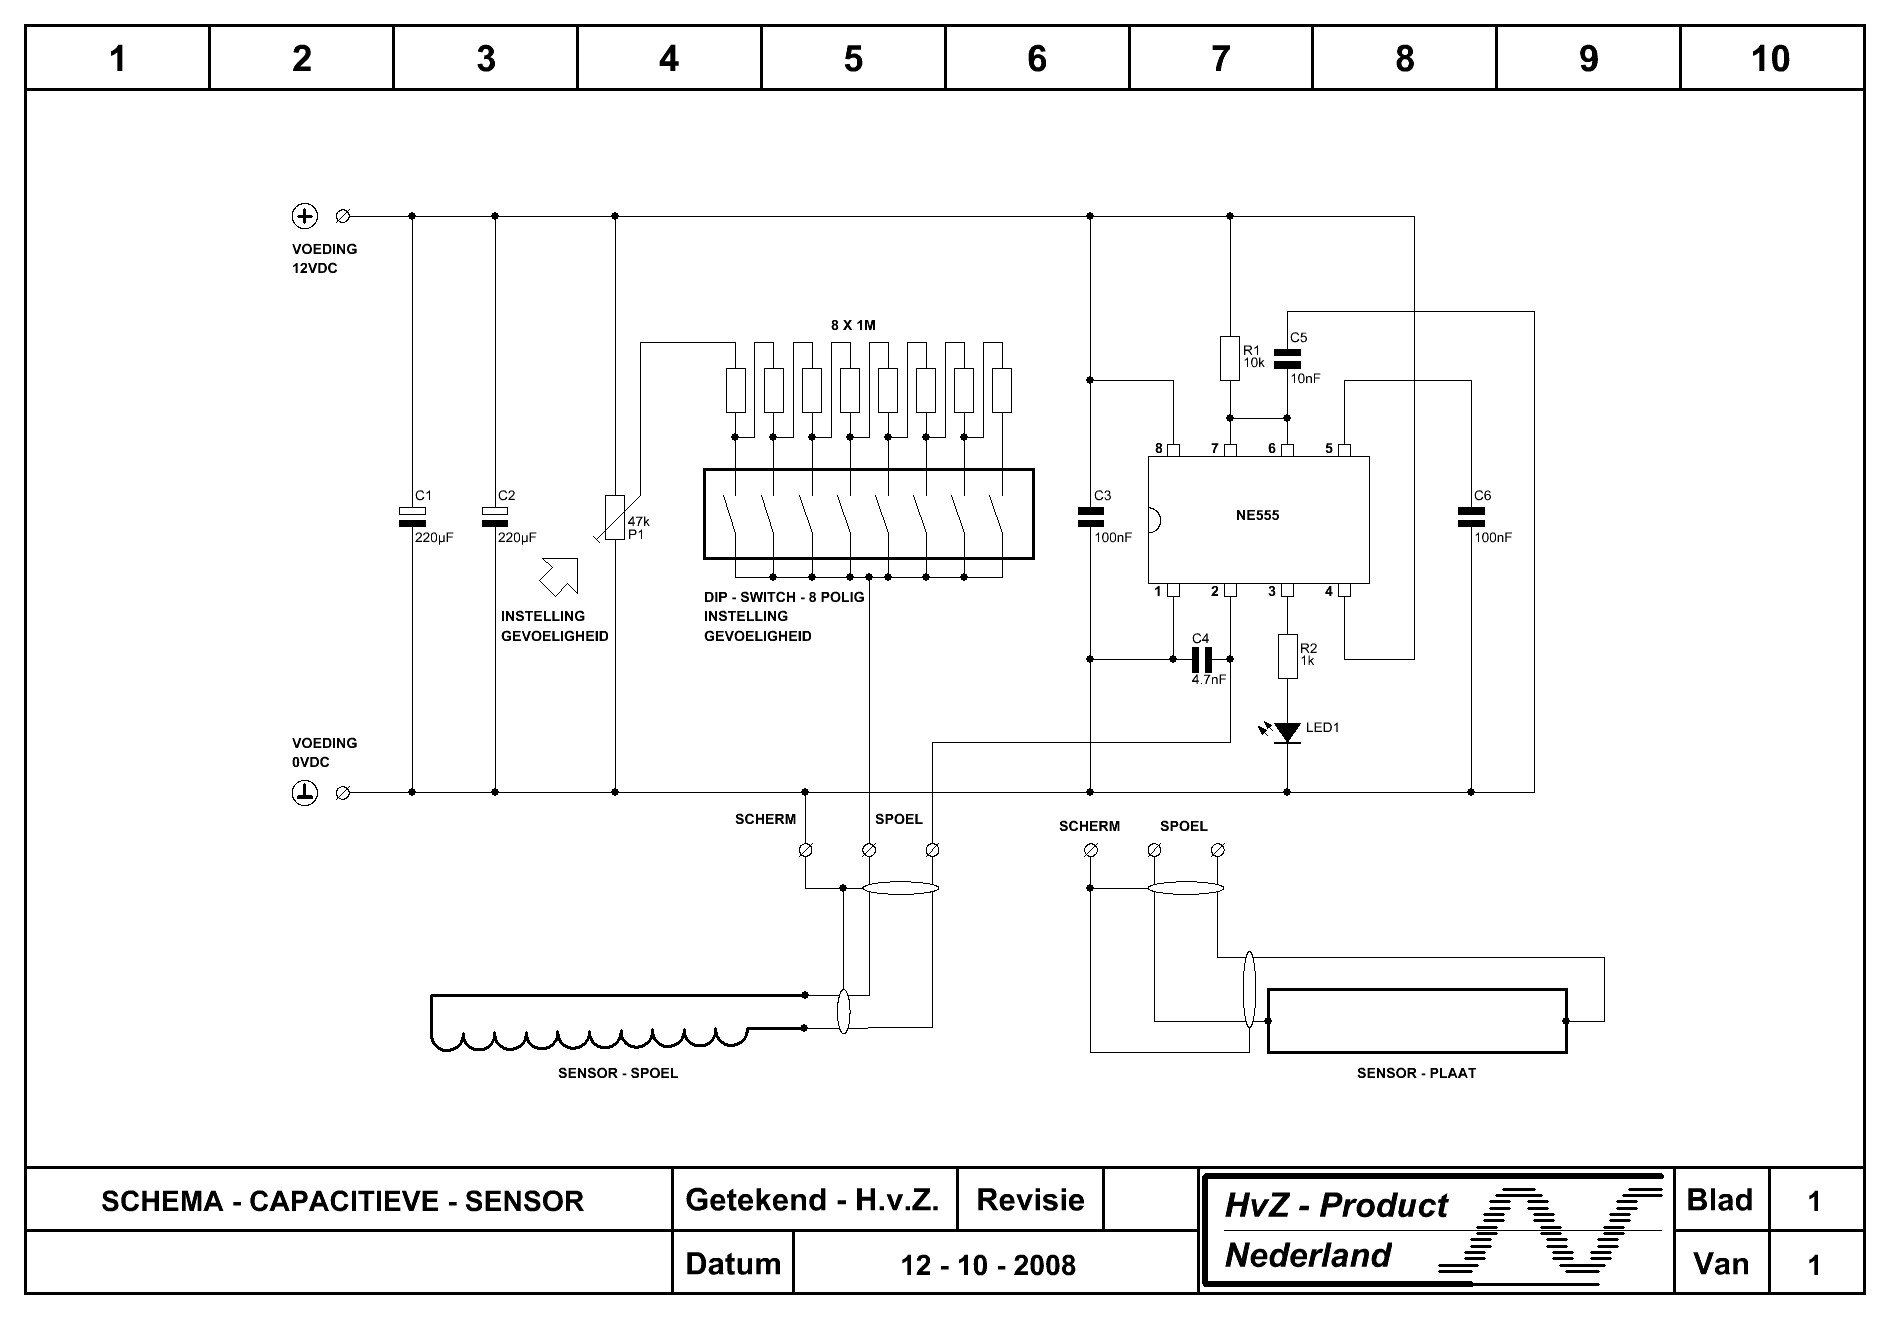 Relay Driver Circuit Using Uln2003 as well 537 as well 78275 additionally Buy Tcp 122 Online Hyderabad India moreover Circuito a t. on darlington transistor